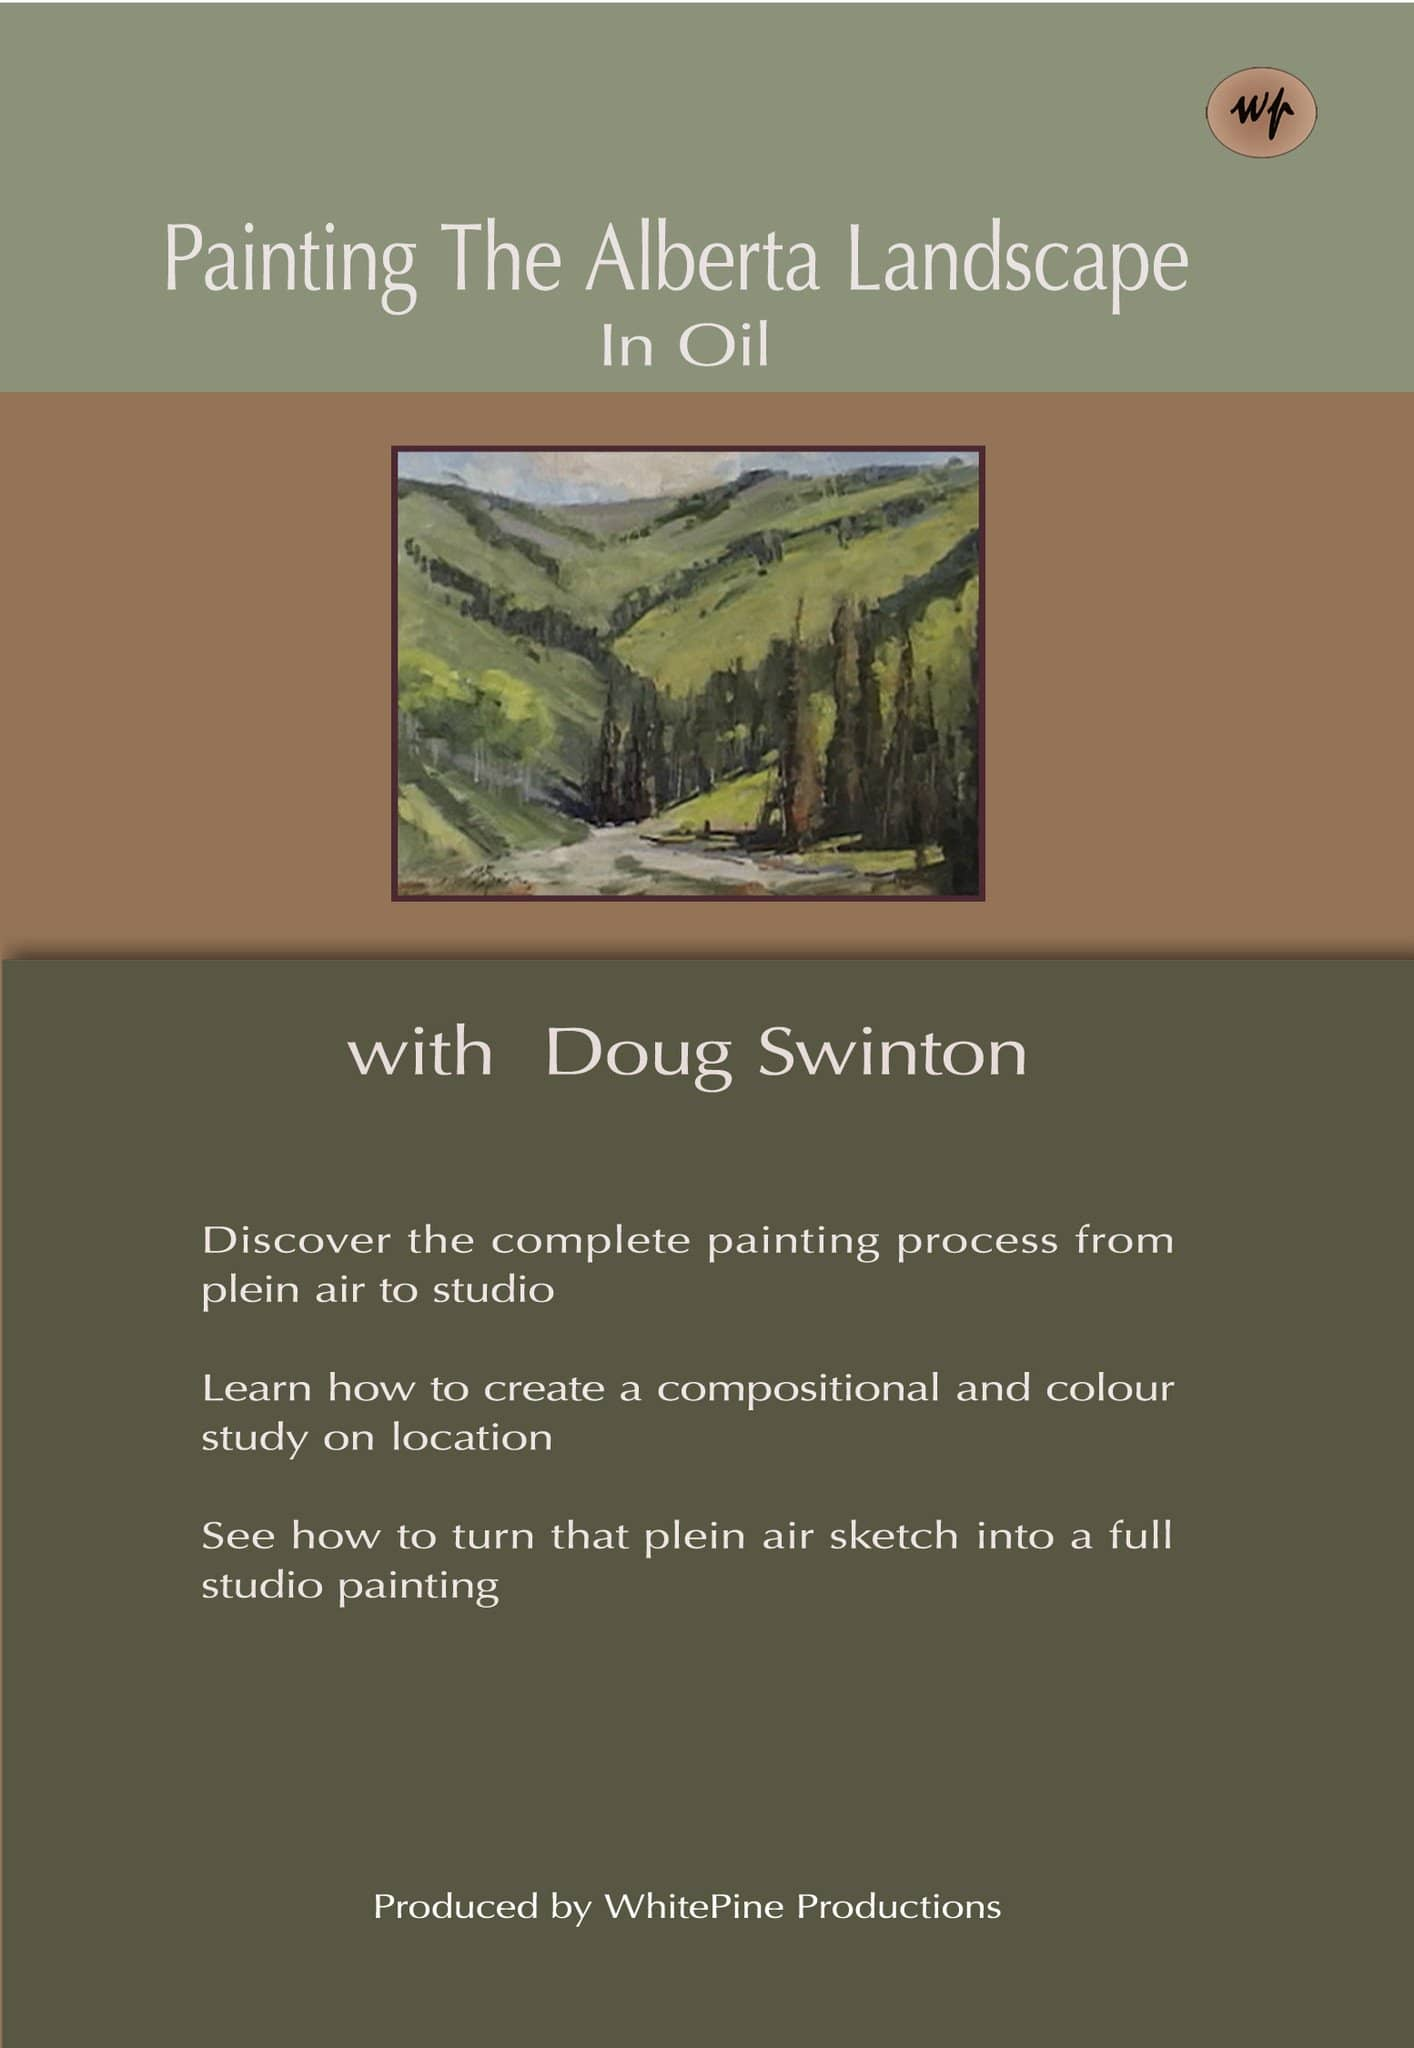 Painting the Alberta Landscape in Oil with Doug Swinton